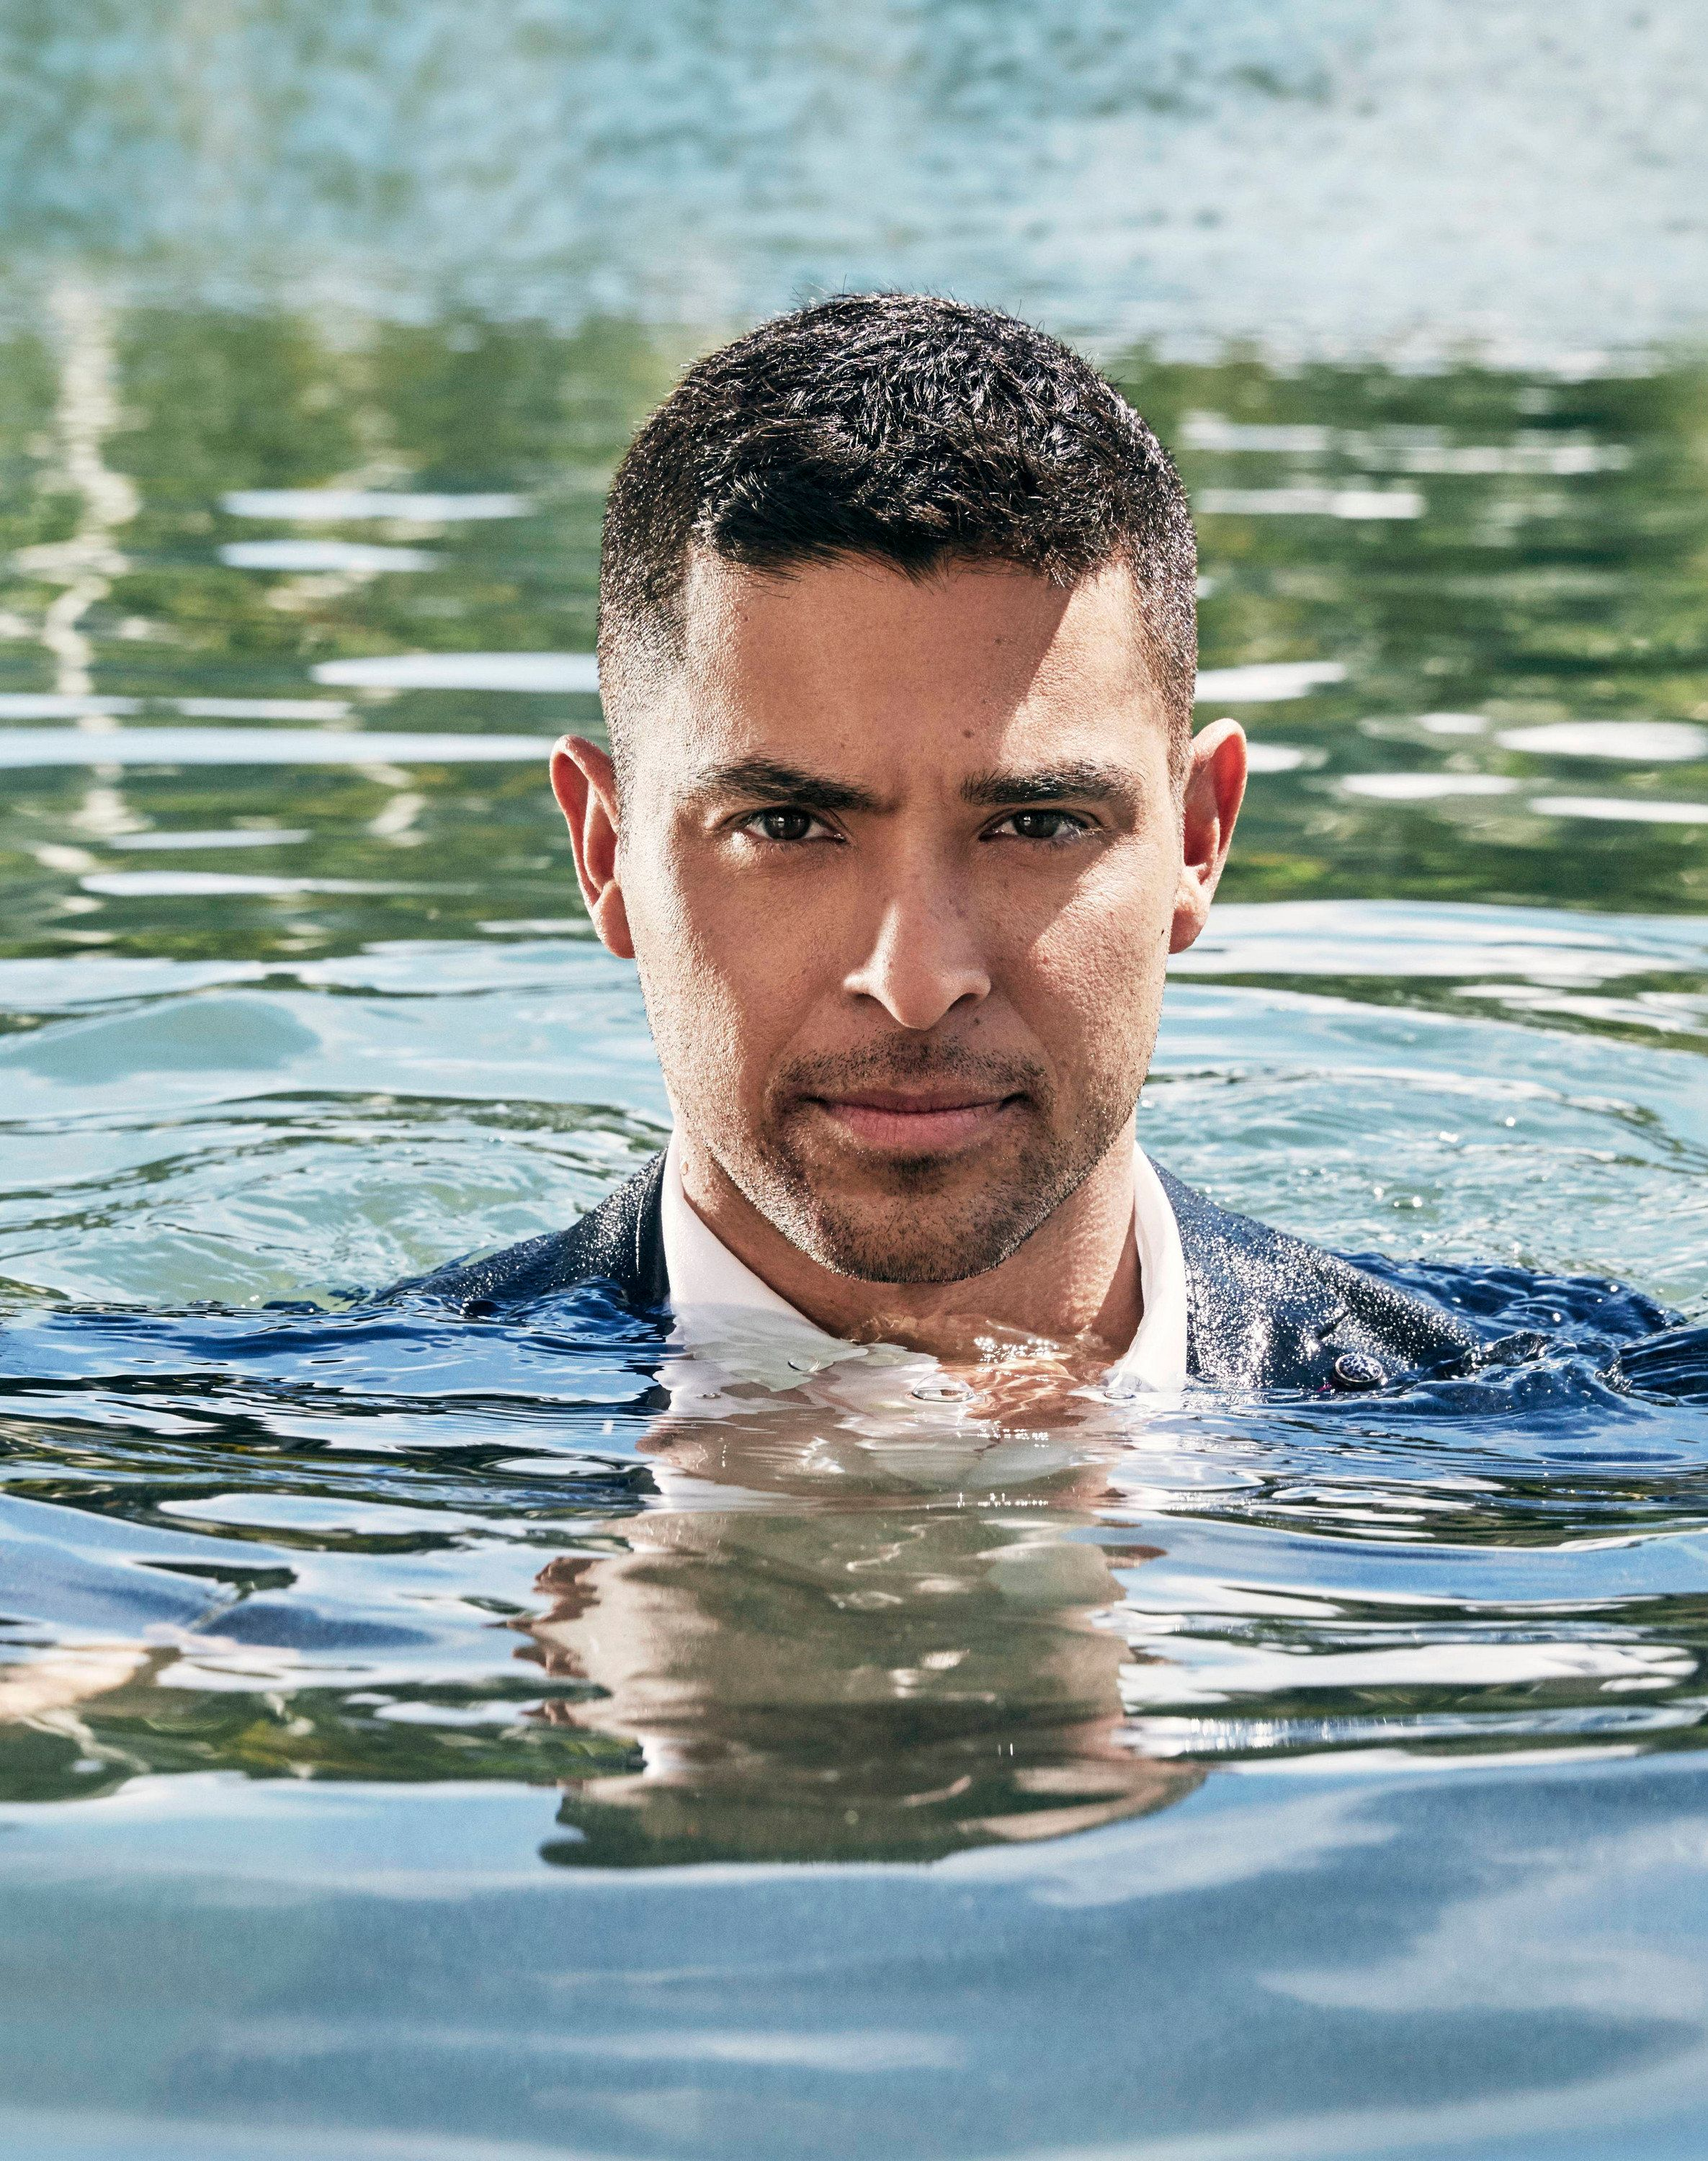 Wilmer Valderrama is fully clothed and emerging from a body of water